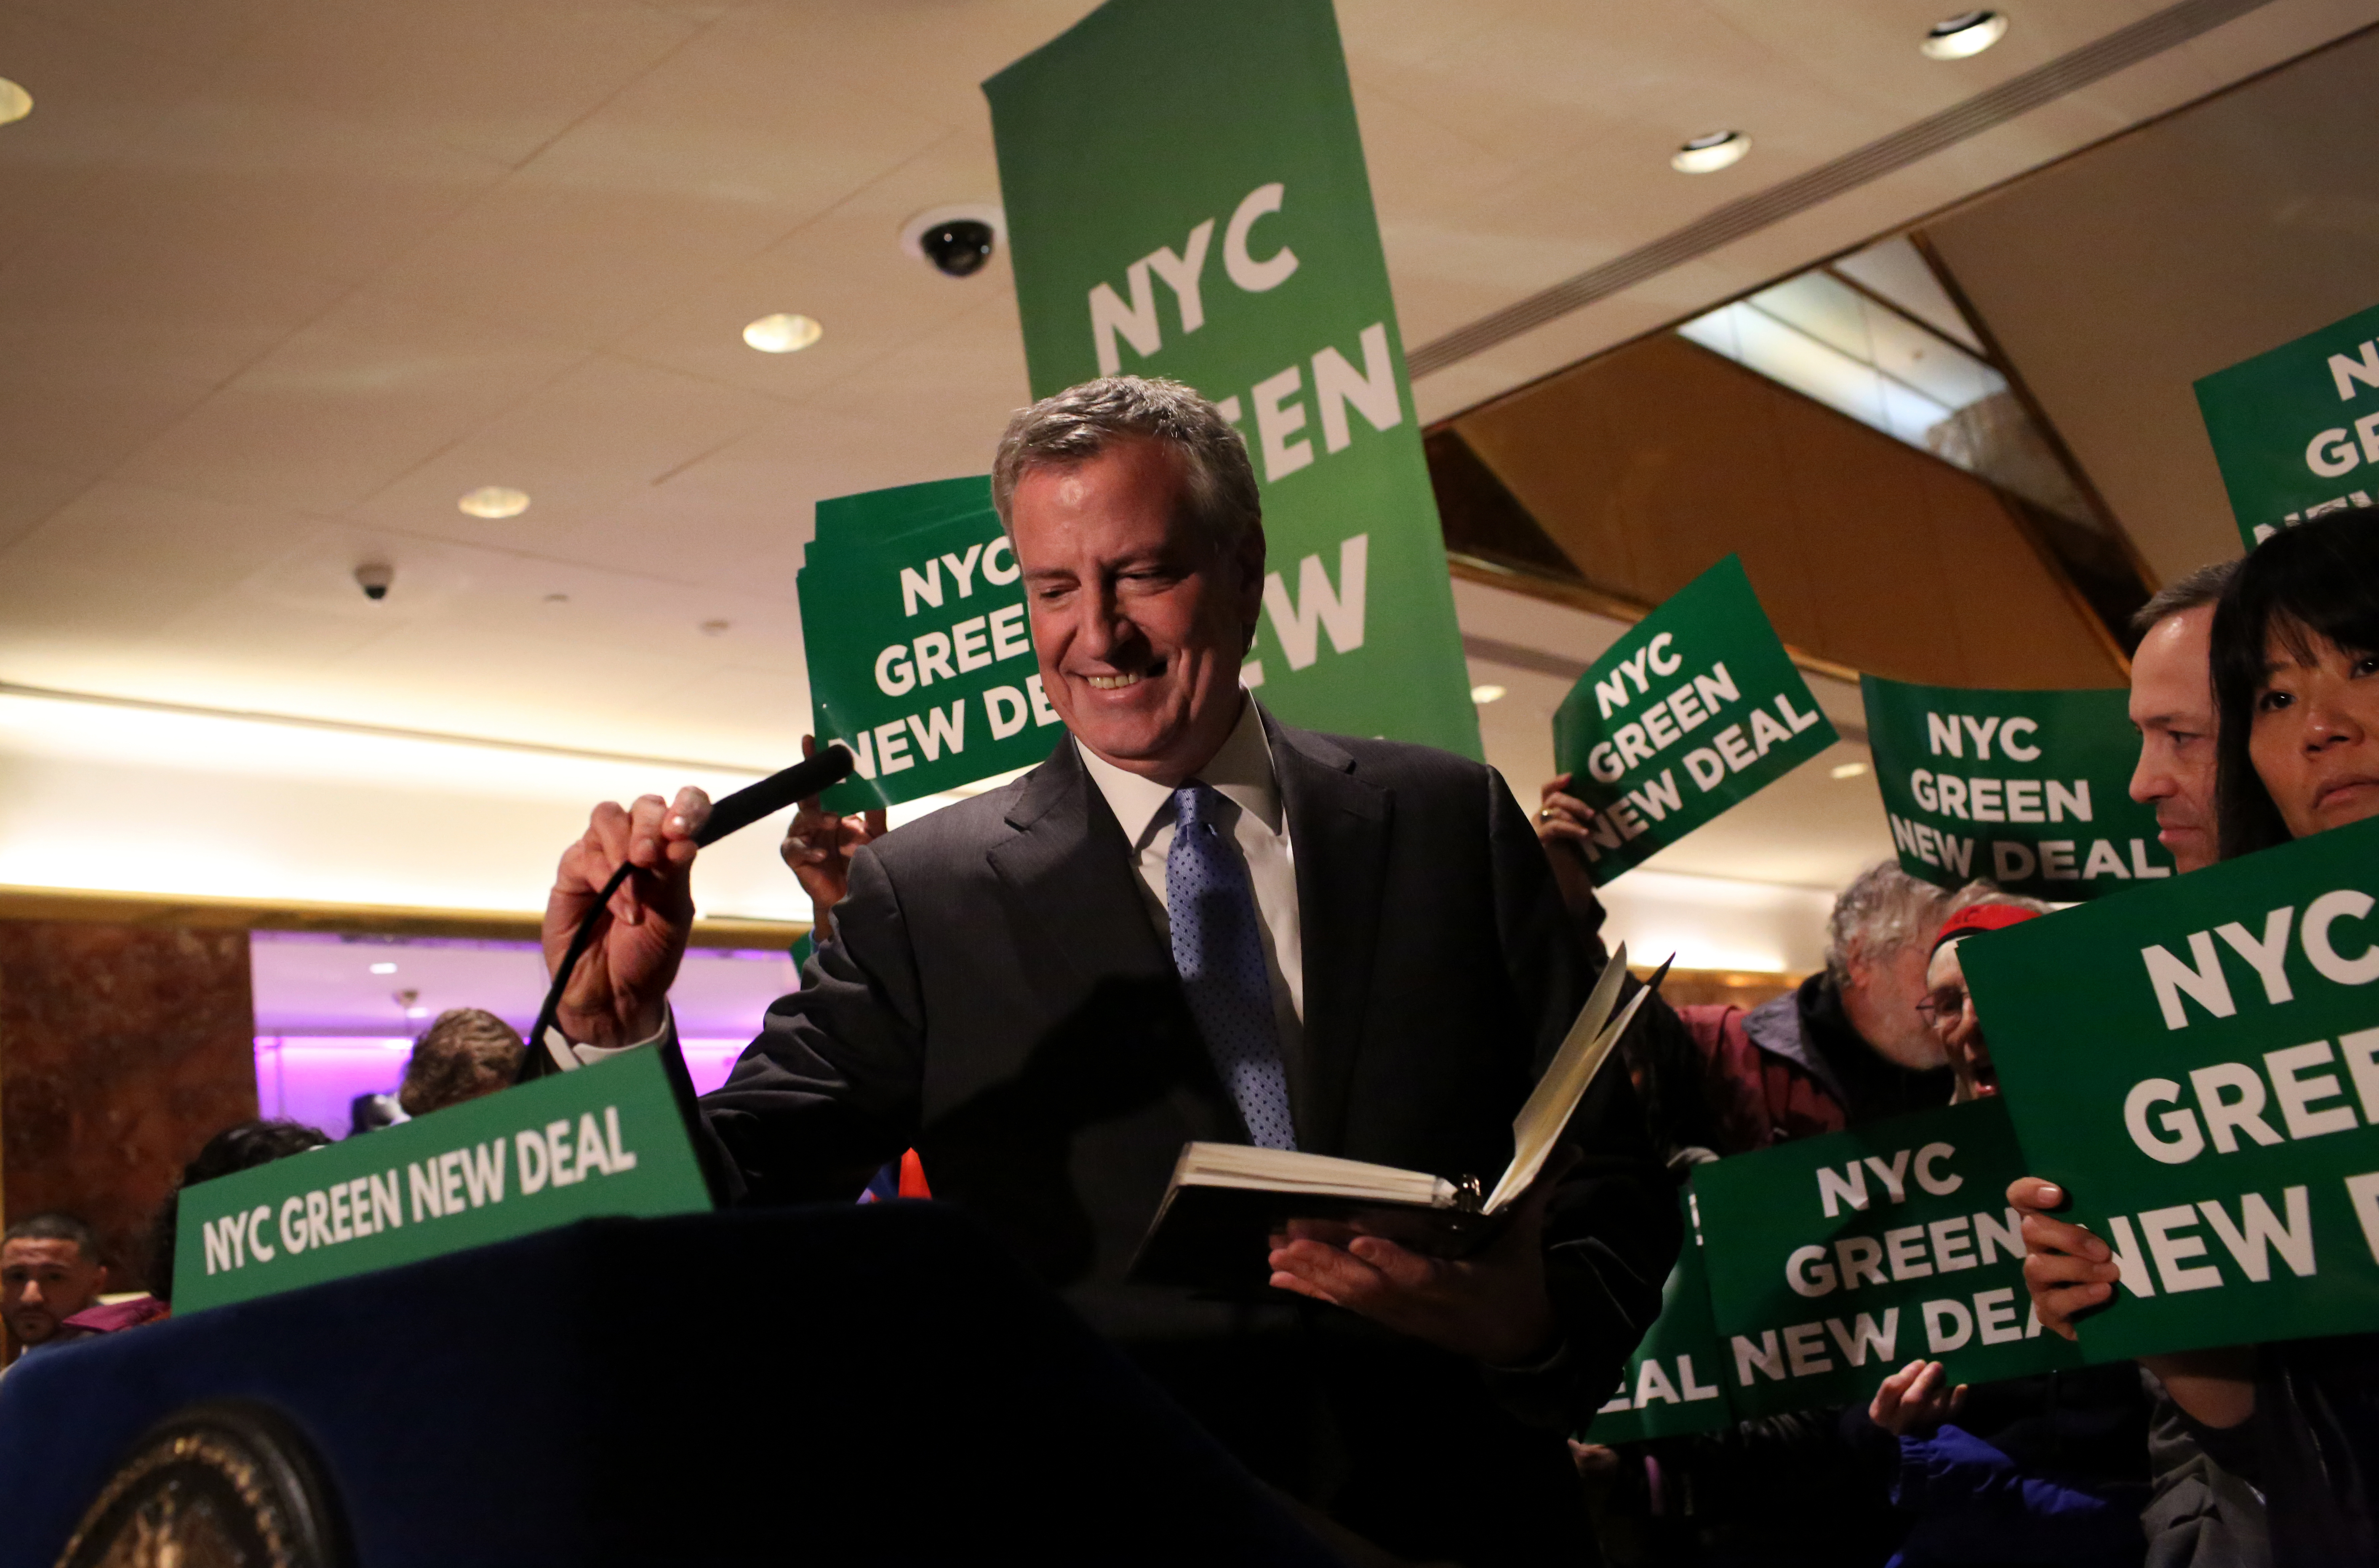 NEW YORK, NY - MAY 13: Mayor Bill De Blasio arrives to a Green New Deal rally At Trump Tower in New York City on May 13, 2019. Mayor de Blasio recently unveiled his Green New Deal to reduce carbon emissions in New York City. (Yana Paskova/Getty Images)